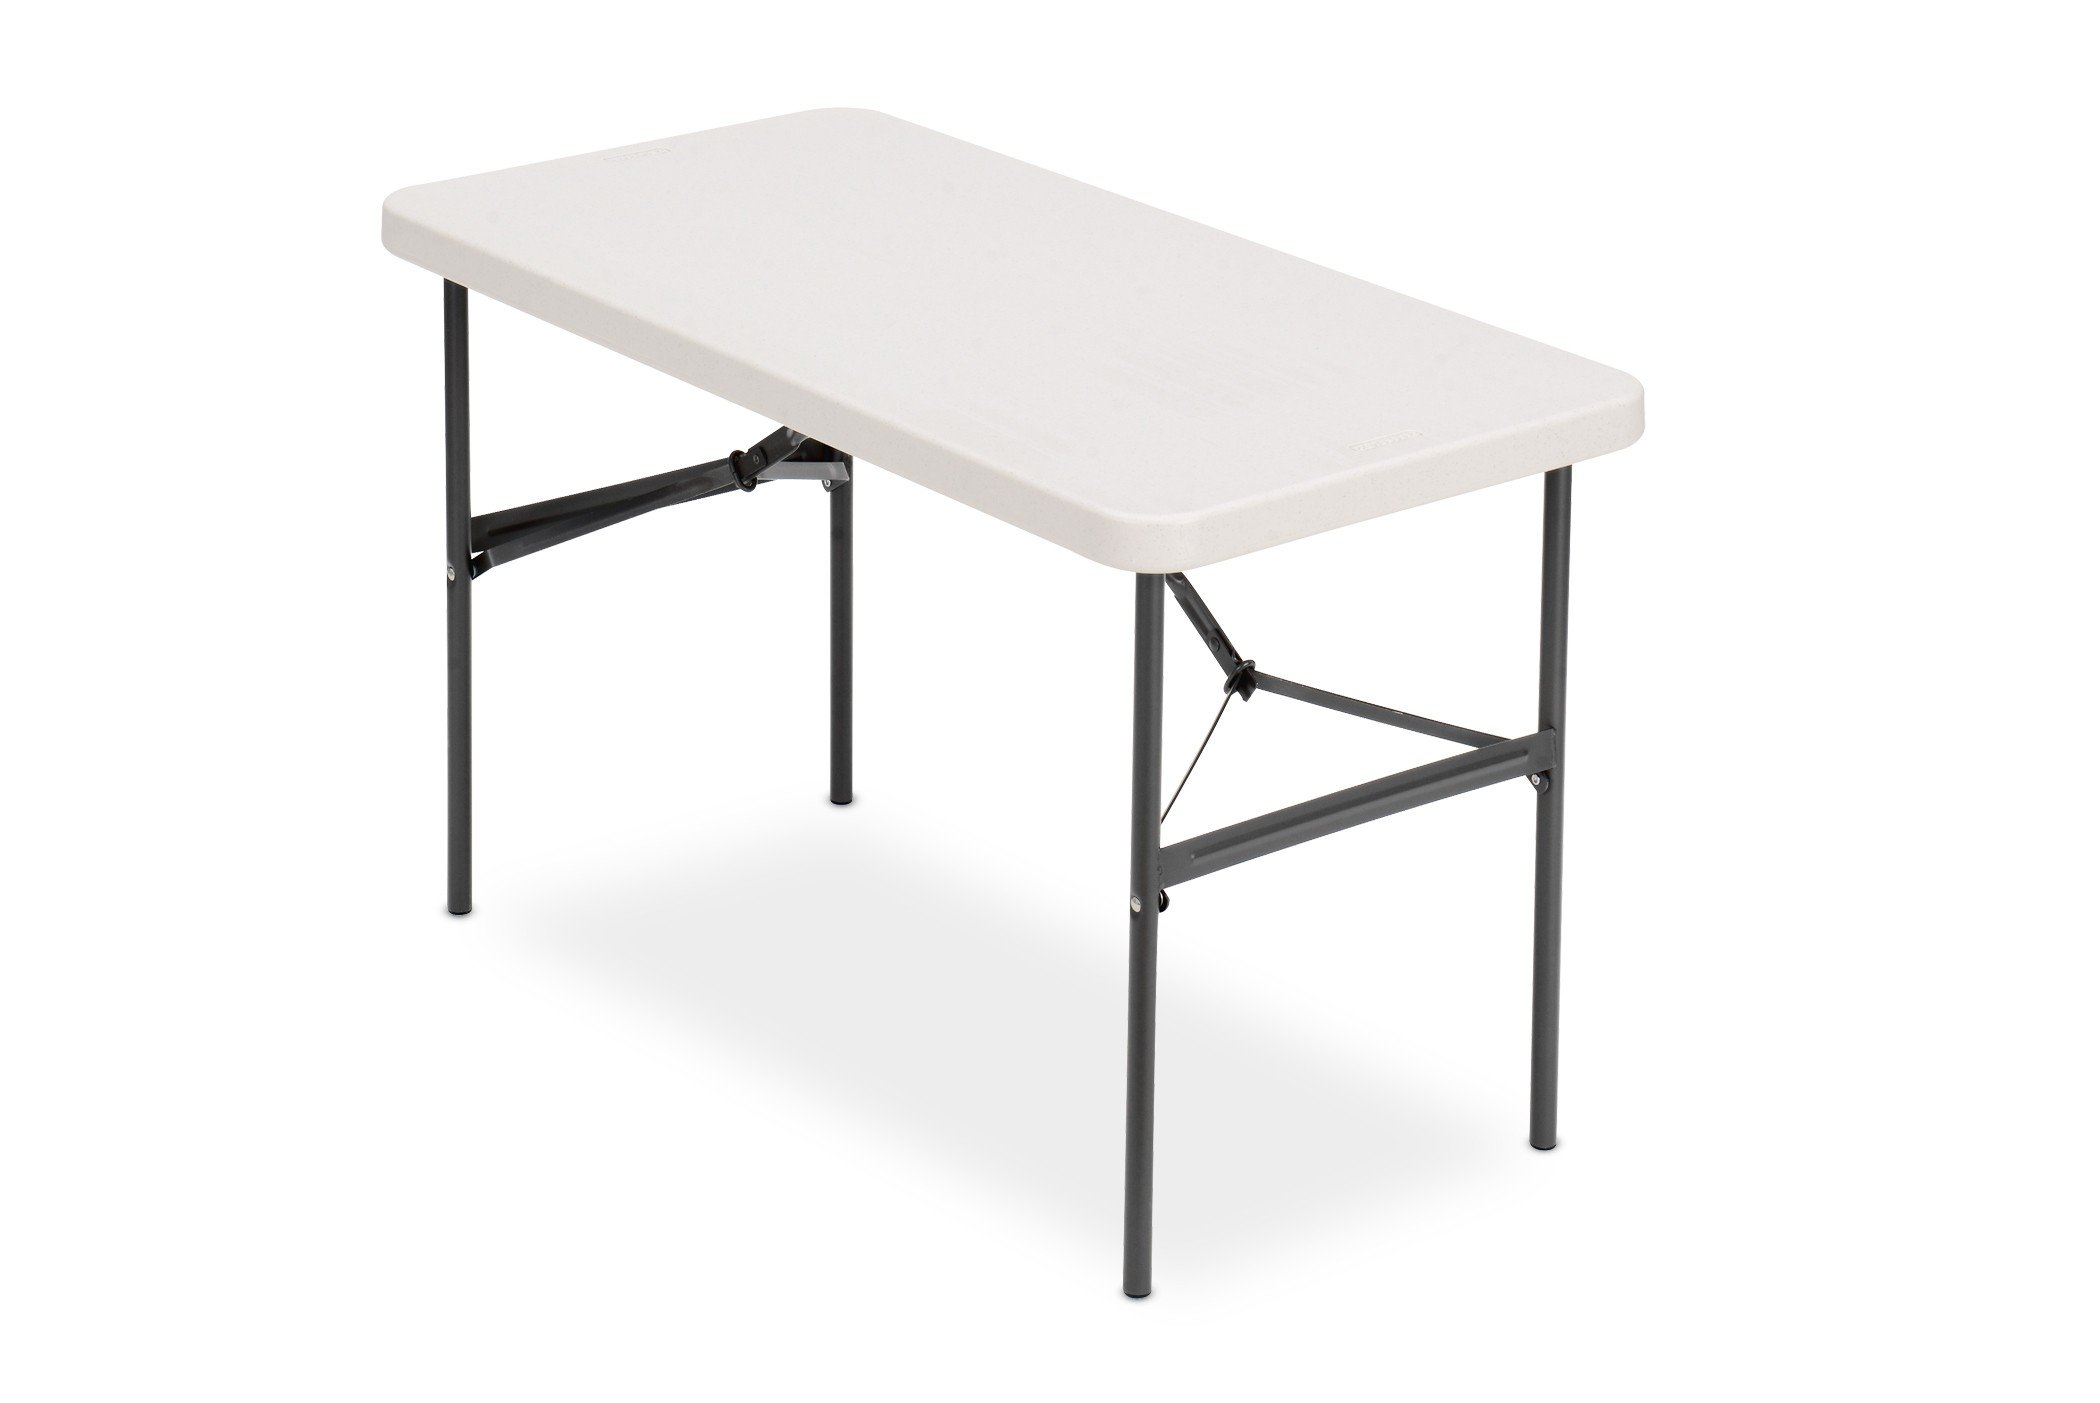 Iceberg 24'' x 48'' Folding Table, Platinum, IndestrucTable TOO 500 Series (MADE IN USA) by Iceberg